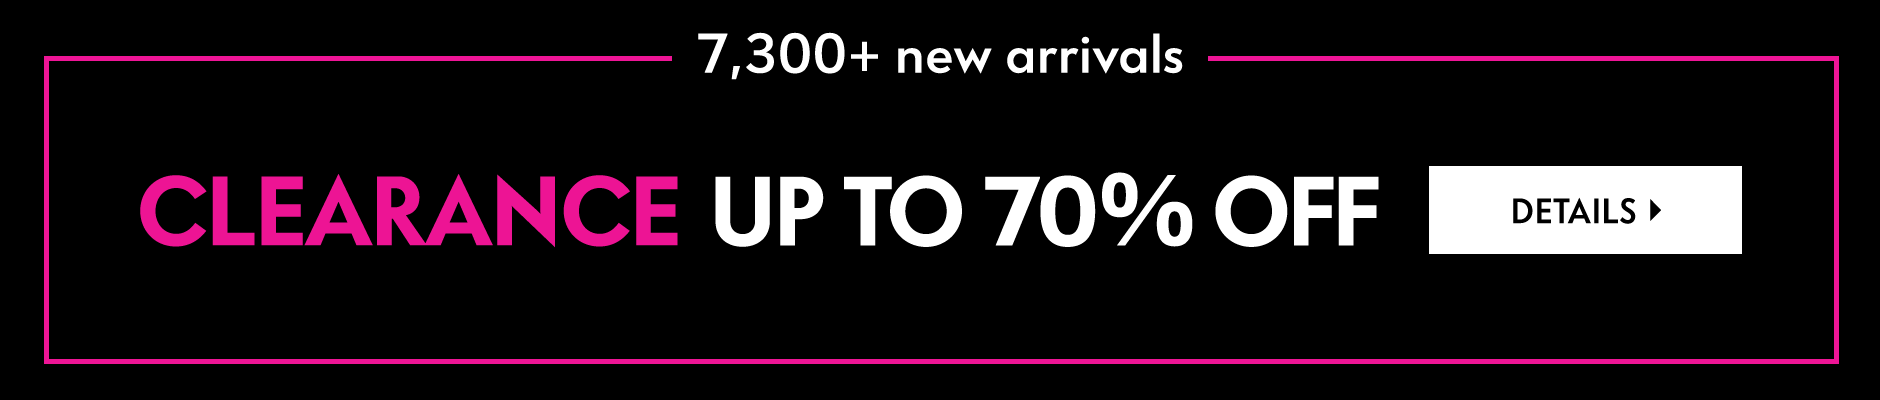 New Clearance Arrivals! Up to 70% off